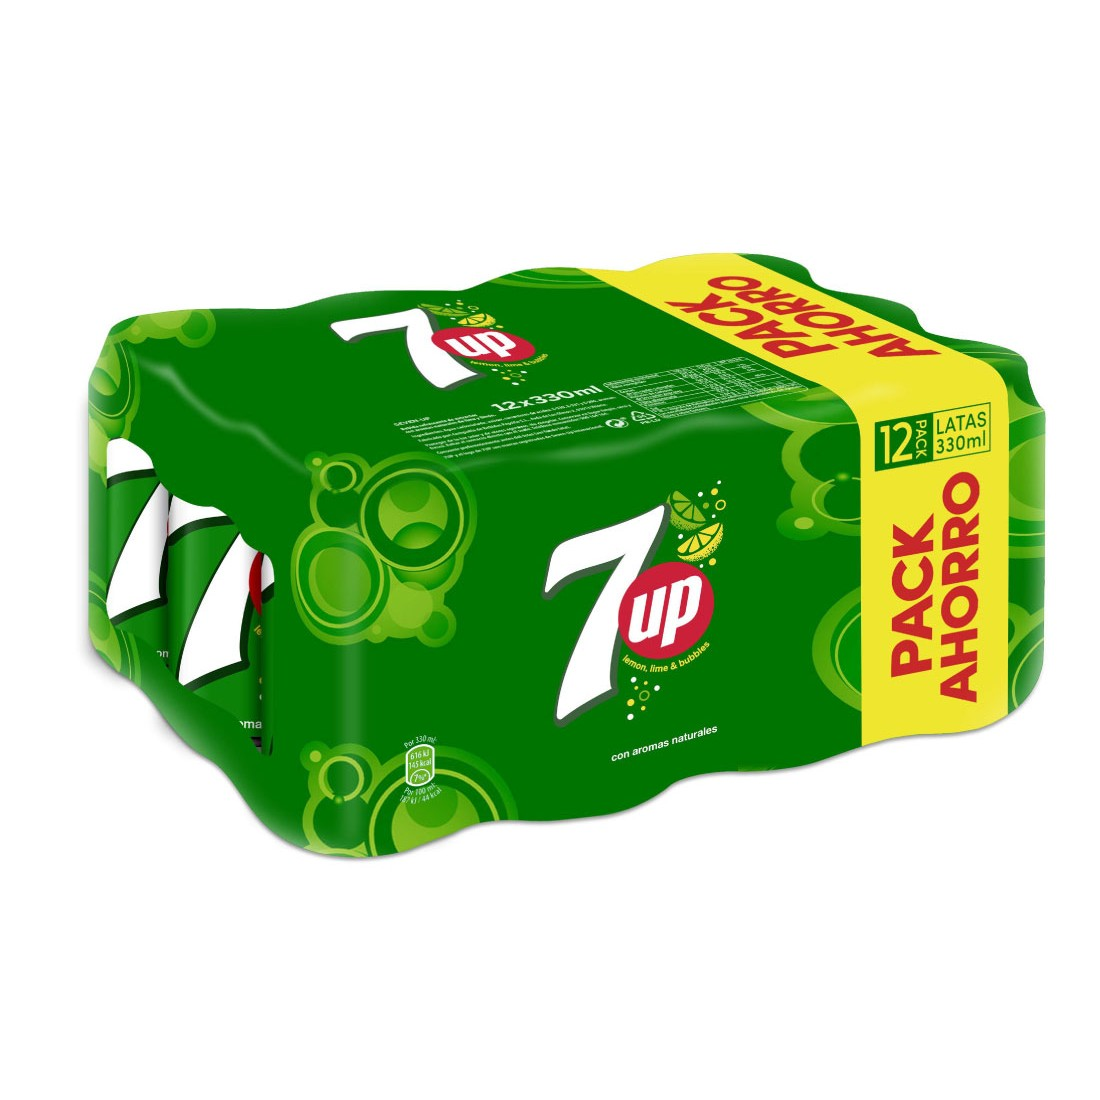 7up lima refresco lima limon de 33cl. por 12 unidades en lata